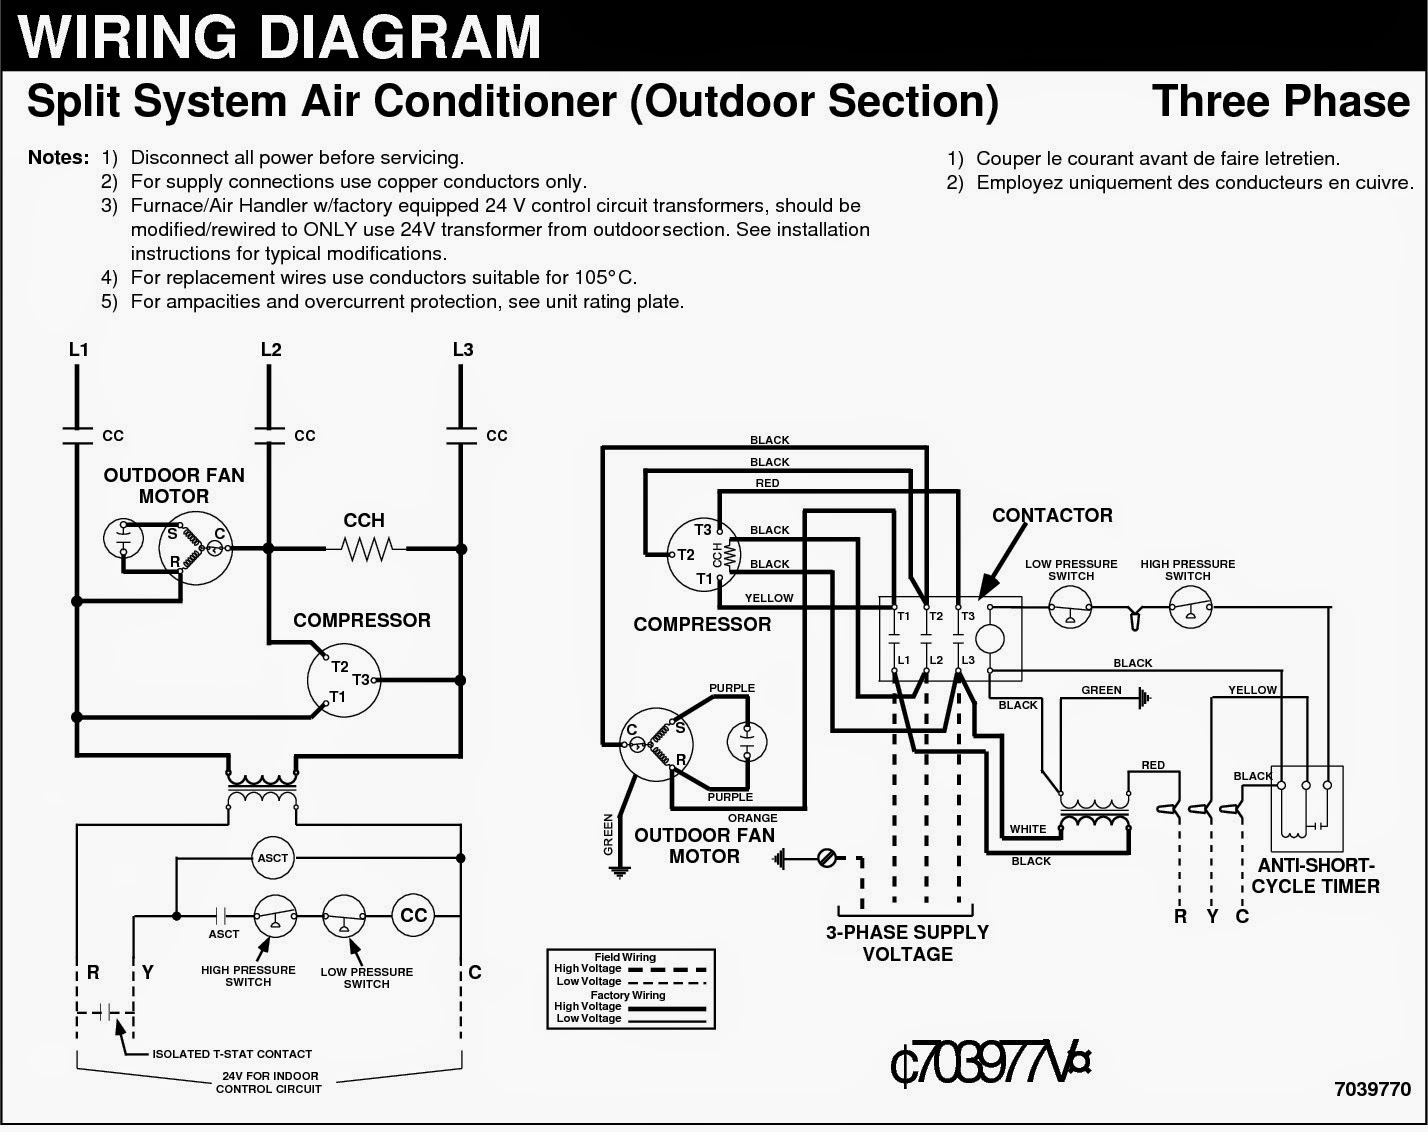 Duct Smoke Detectors Frequently Asked Questions also 0912150 in addition Sanyo Air Conditioner Wiring Diagrams besides Fan Limit Switch Installation Wiring in addition C3RpaGwtbXMyNTAtcGFydHMtc2NoZW1hdGlj. on trane wiring diagrams